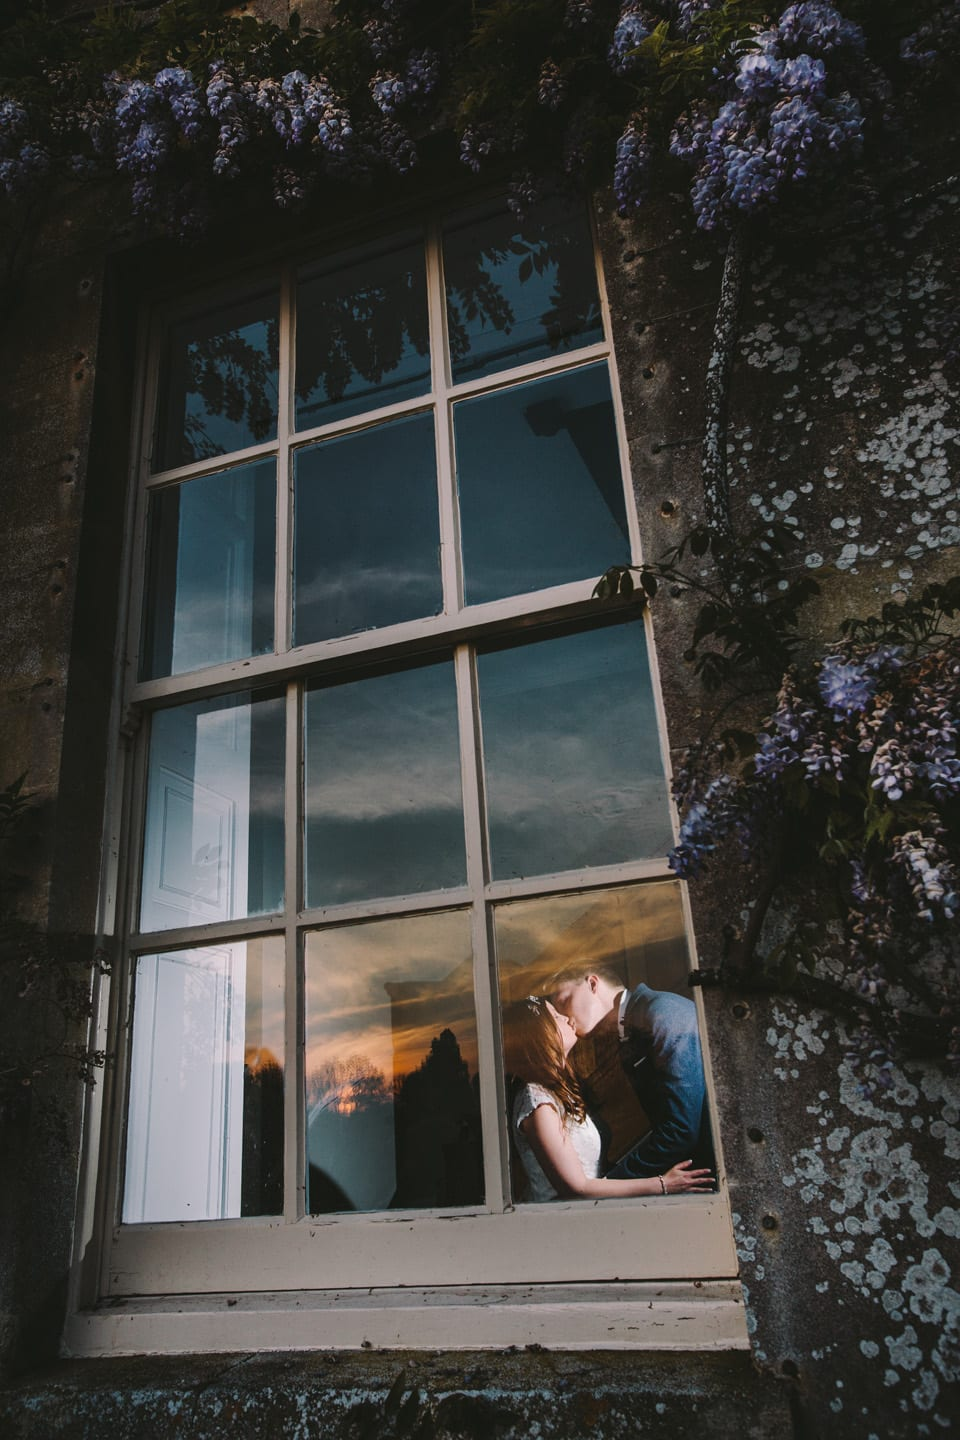 bride and groom kissing in a window at sunset